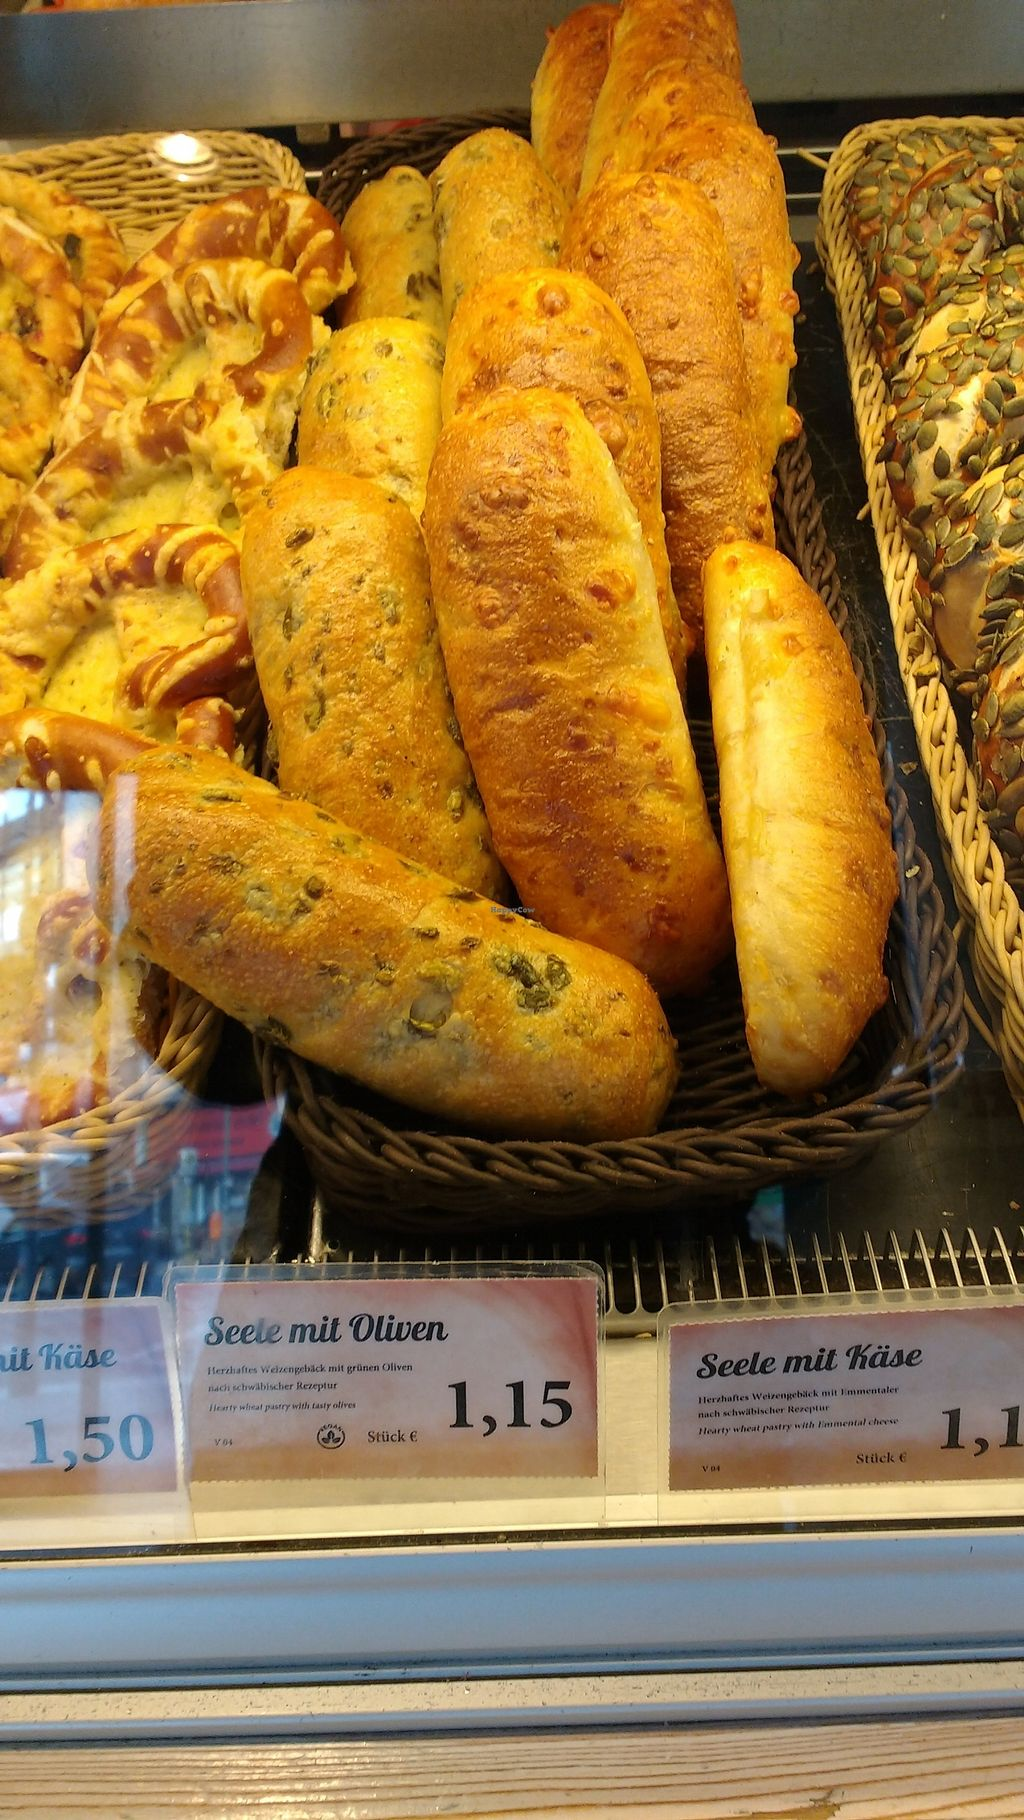 """Photo of Kamps Backstube  by <a href=""""/members/profile/KirstenSchellekens"""">KirstenSchellekens</a> <br/>Olive bread <br/> April 10, 2018  - <a href='/contact/abuse/image/116495/383185'>Report</a>"""